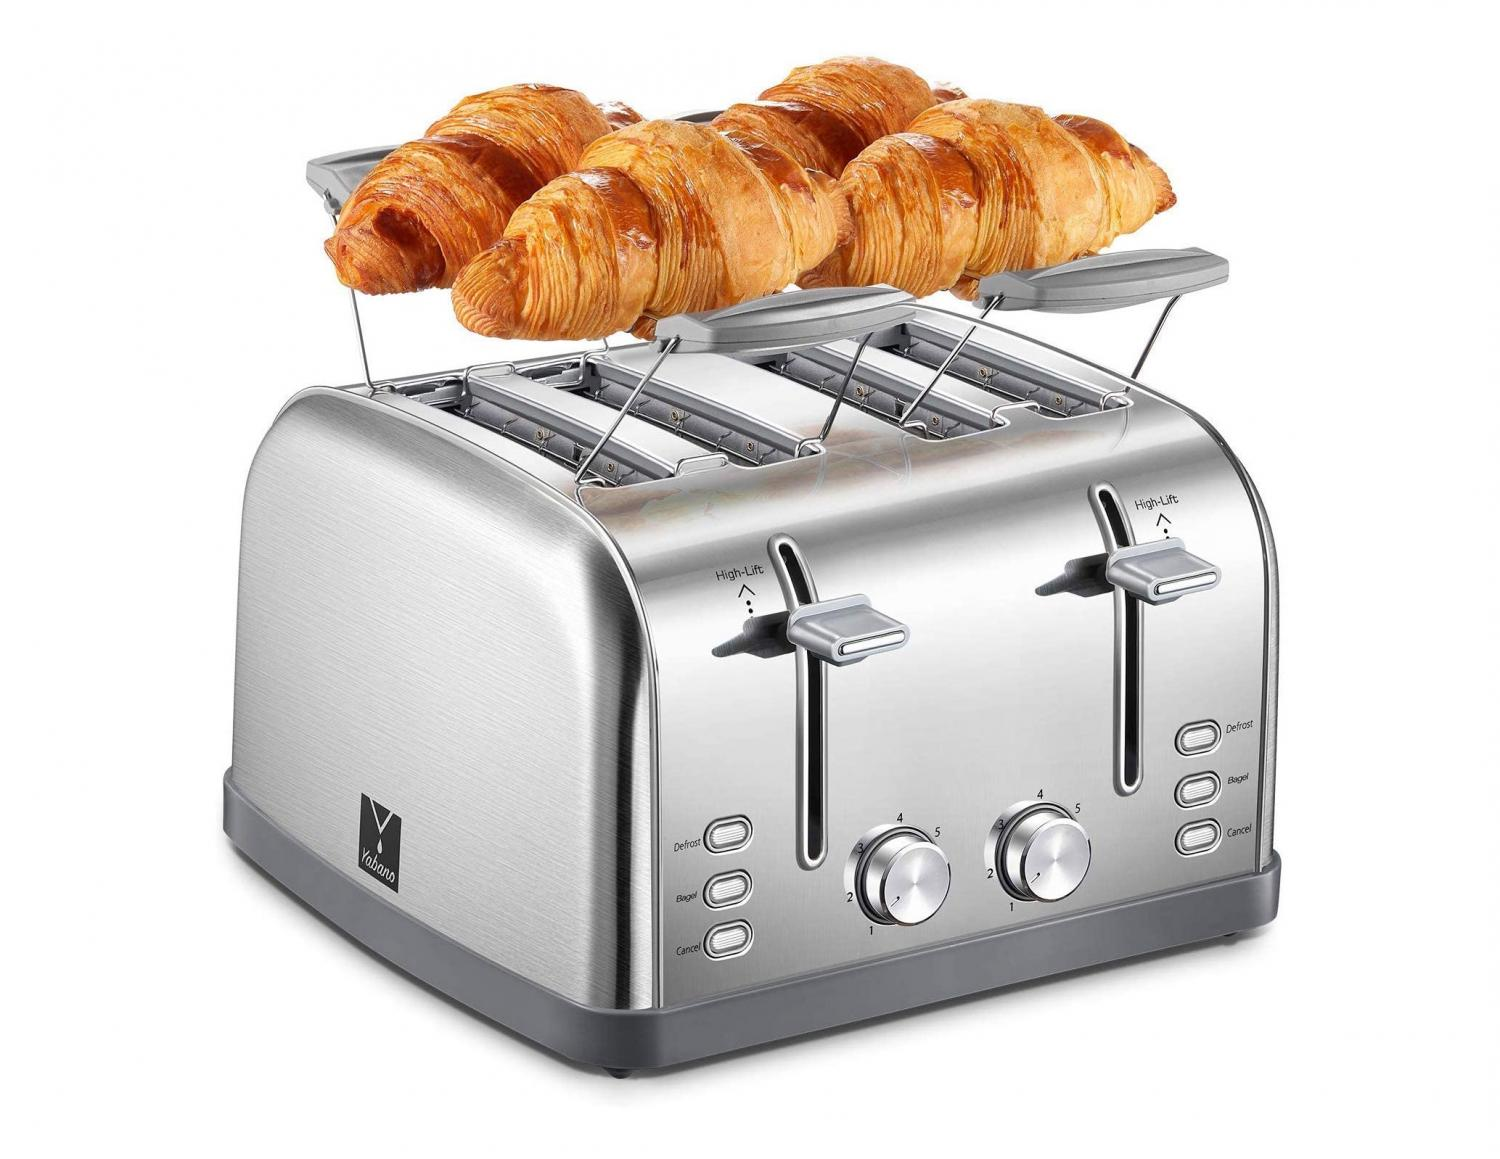 a toaster with a warming rack